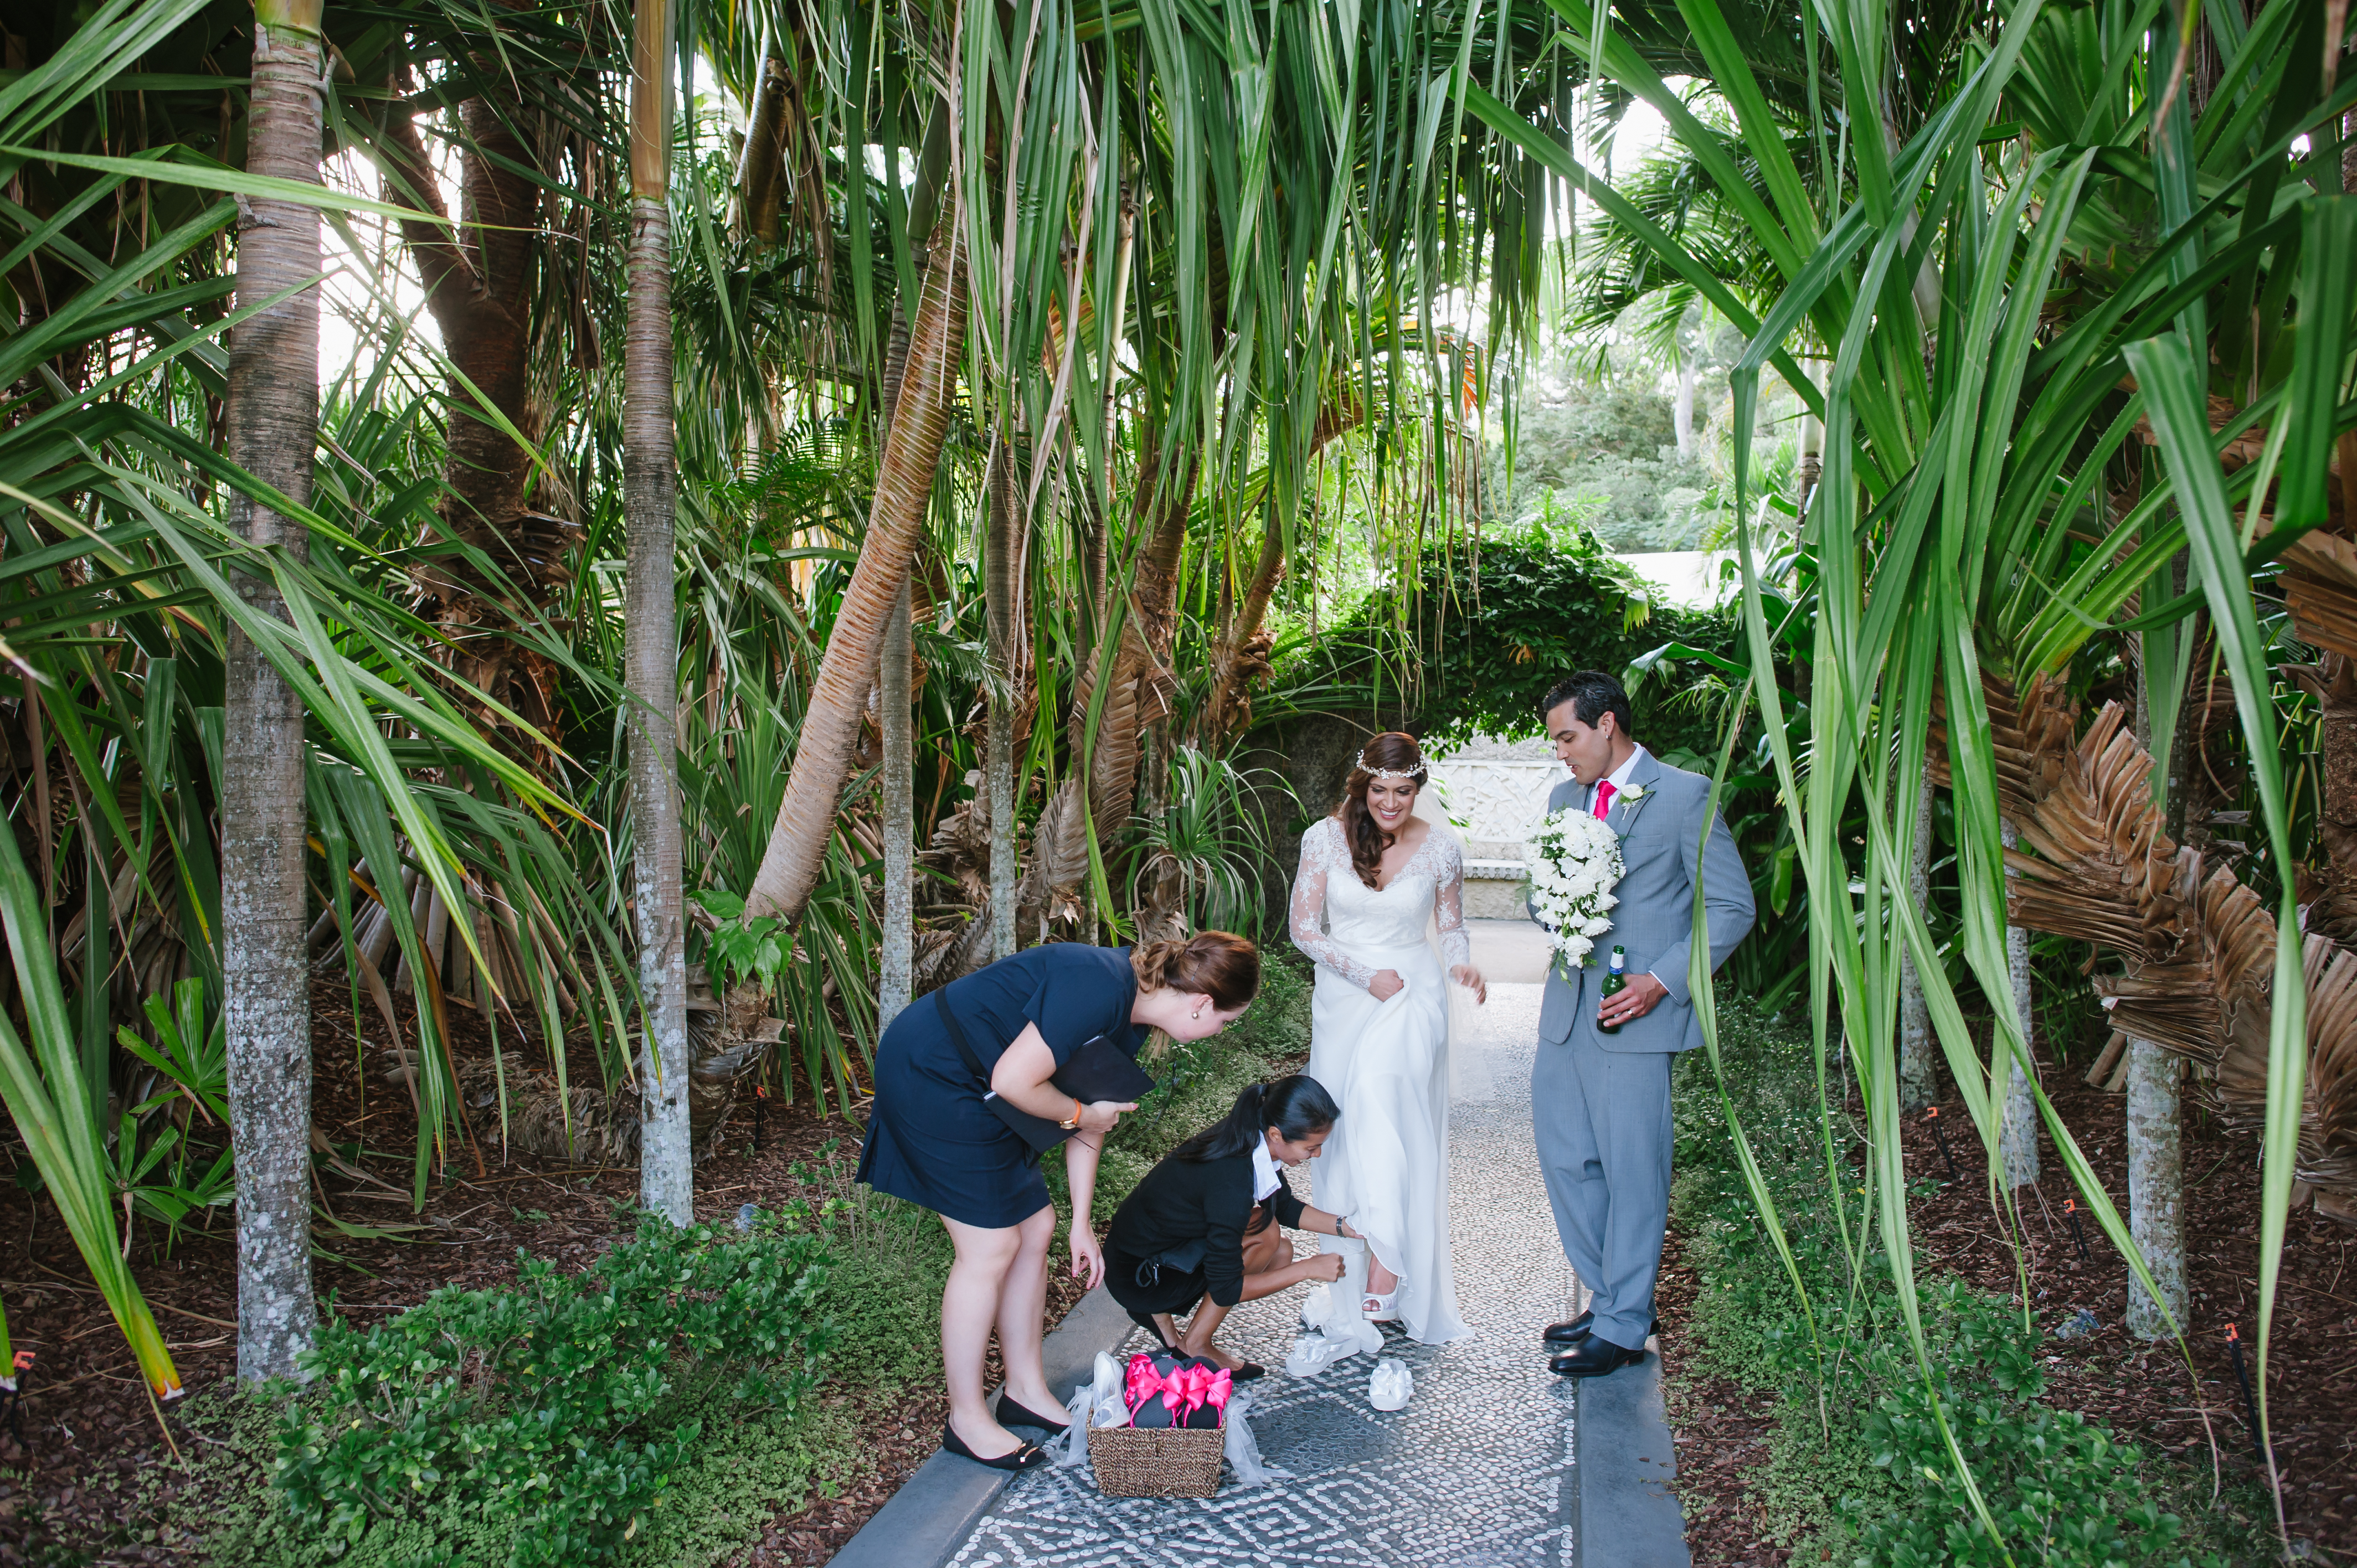 Bride slipping into her Bridal Flip Flops while her Groom watches